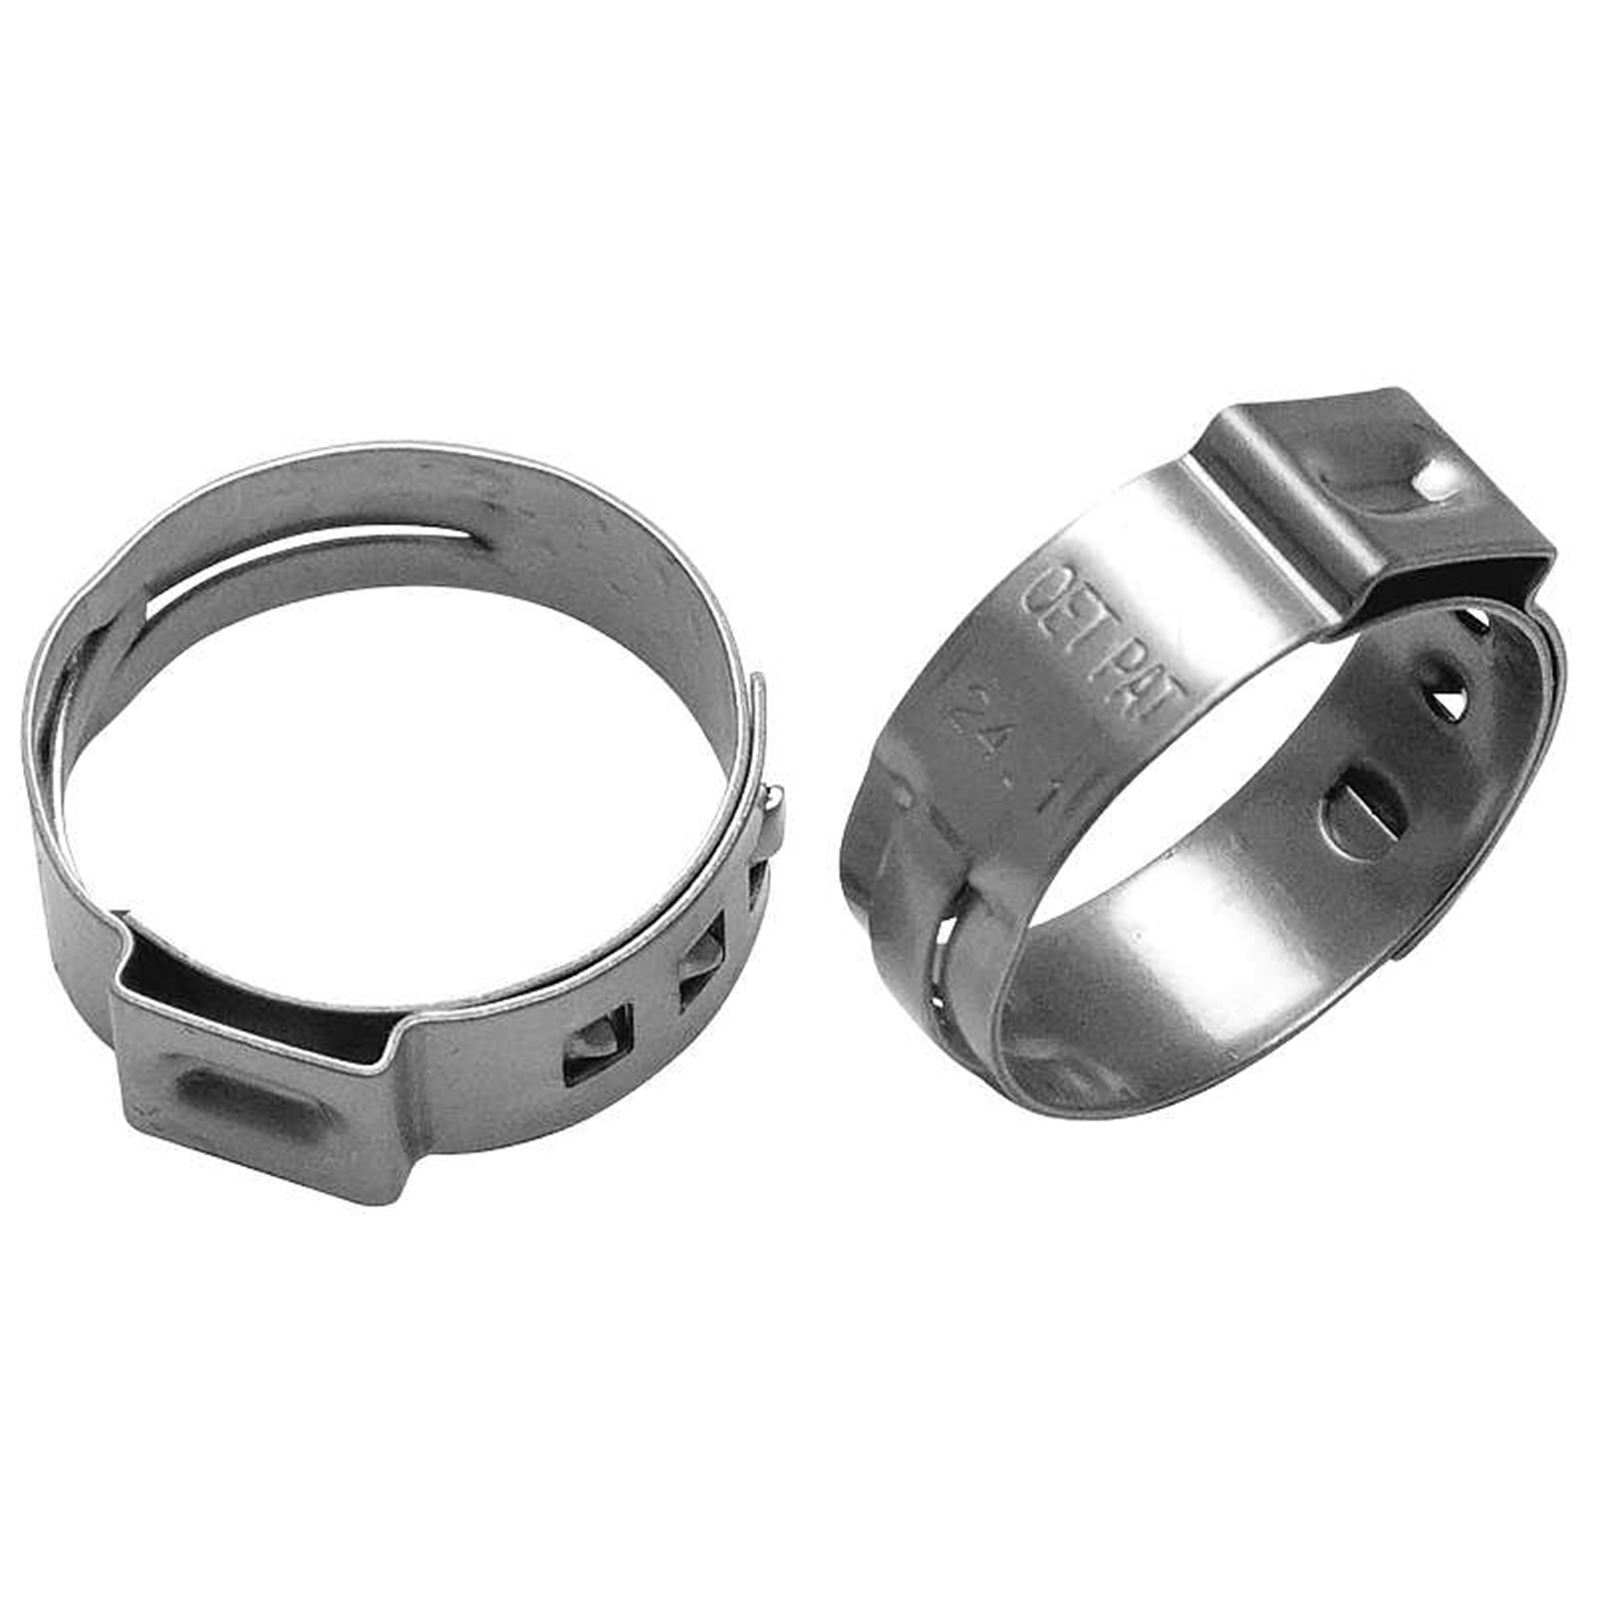 Motion Pro Stepless Clamps